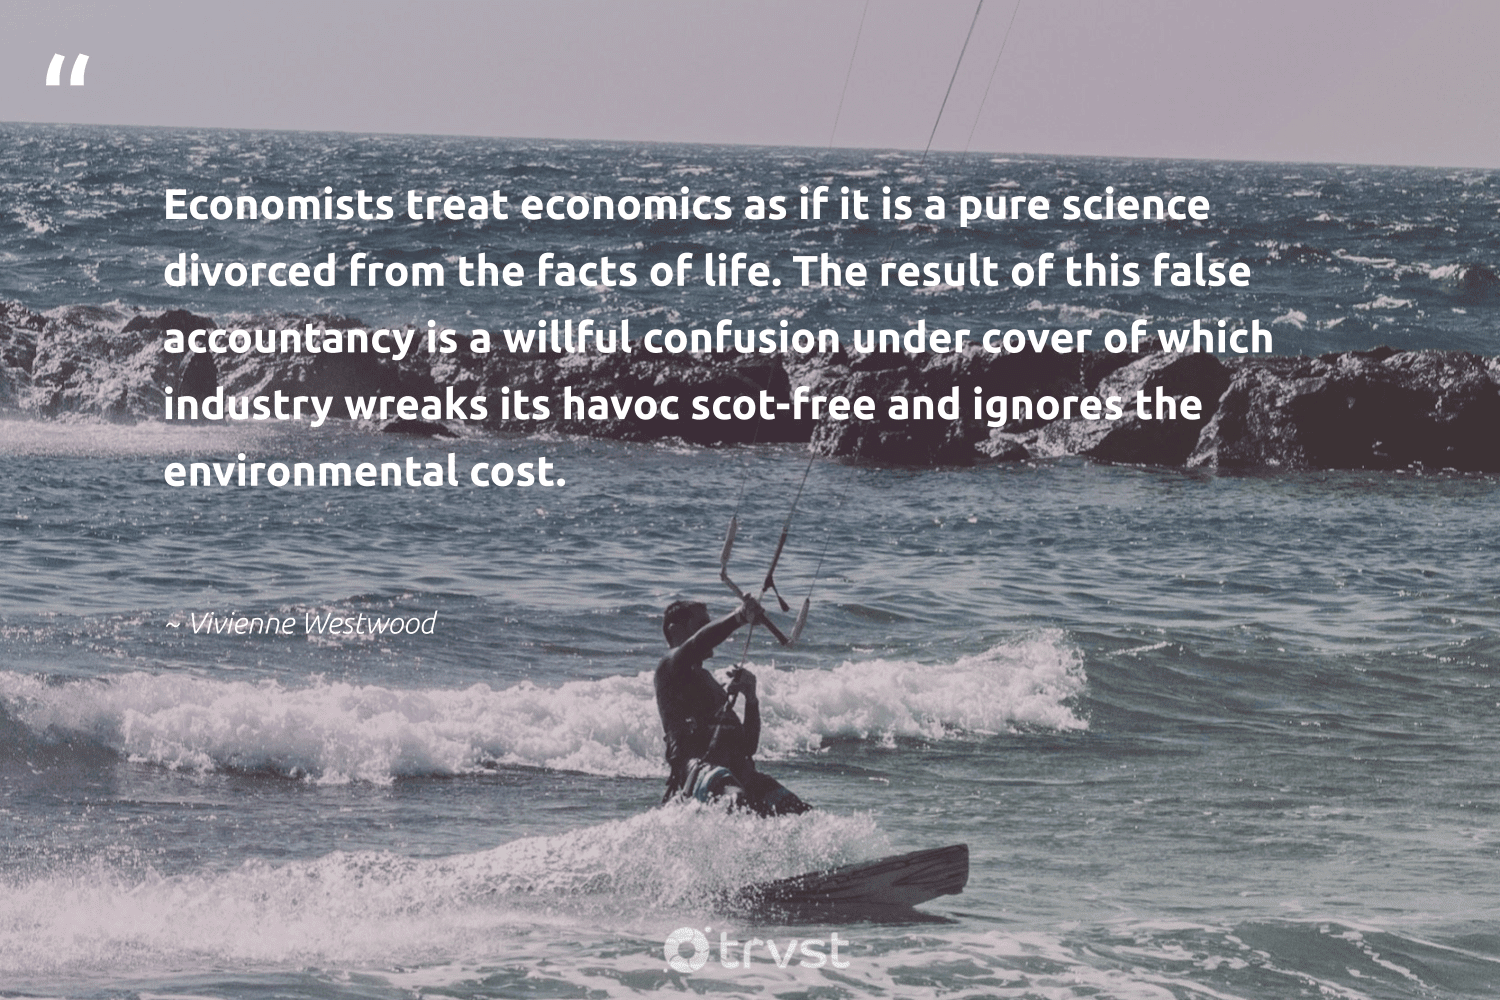 """""""Economists treat economics as if it is a pure science divorced from the facts of life. The result of this false accountancy is a willful confusion under cover of which industry wreaks its havoc scot-free and ignores the environmental cost.""""  - Vivienne Westwood #trvst #quotes #economics #environmental #science #research #dogood #fish #socialimpact #biology #sharedresponsibility #wildlifephotography"""